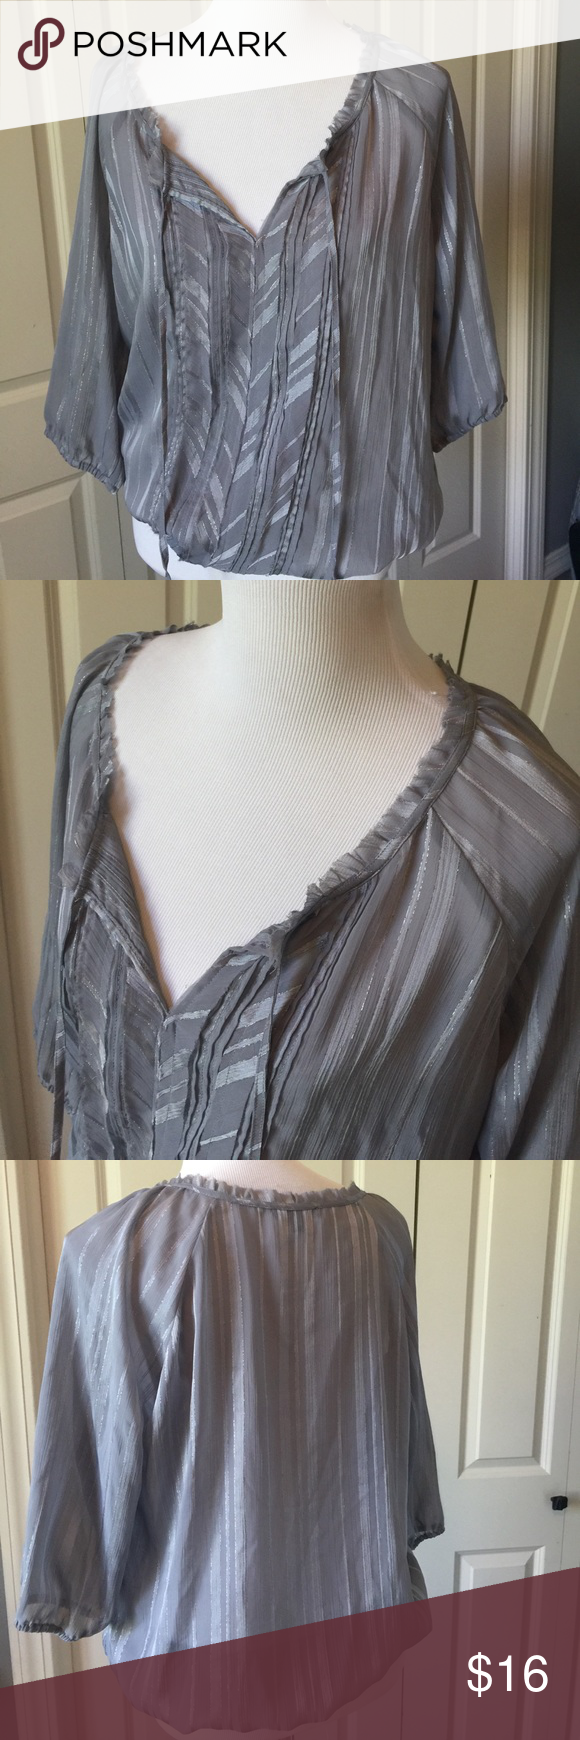 Gray and silver sheer express blouse Ties at the front. Elastic sleeves and waistband. 100% polyester. MR Express Tops Blouses